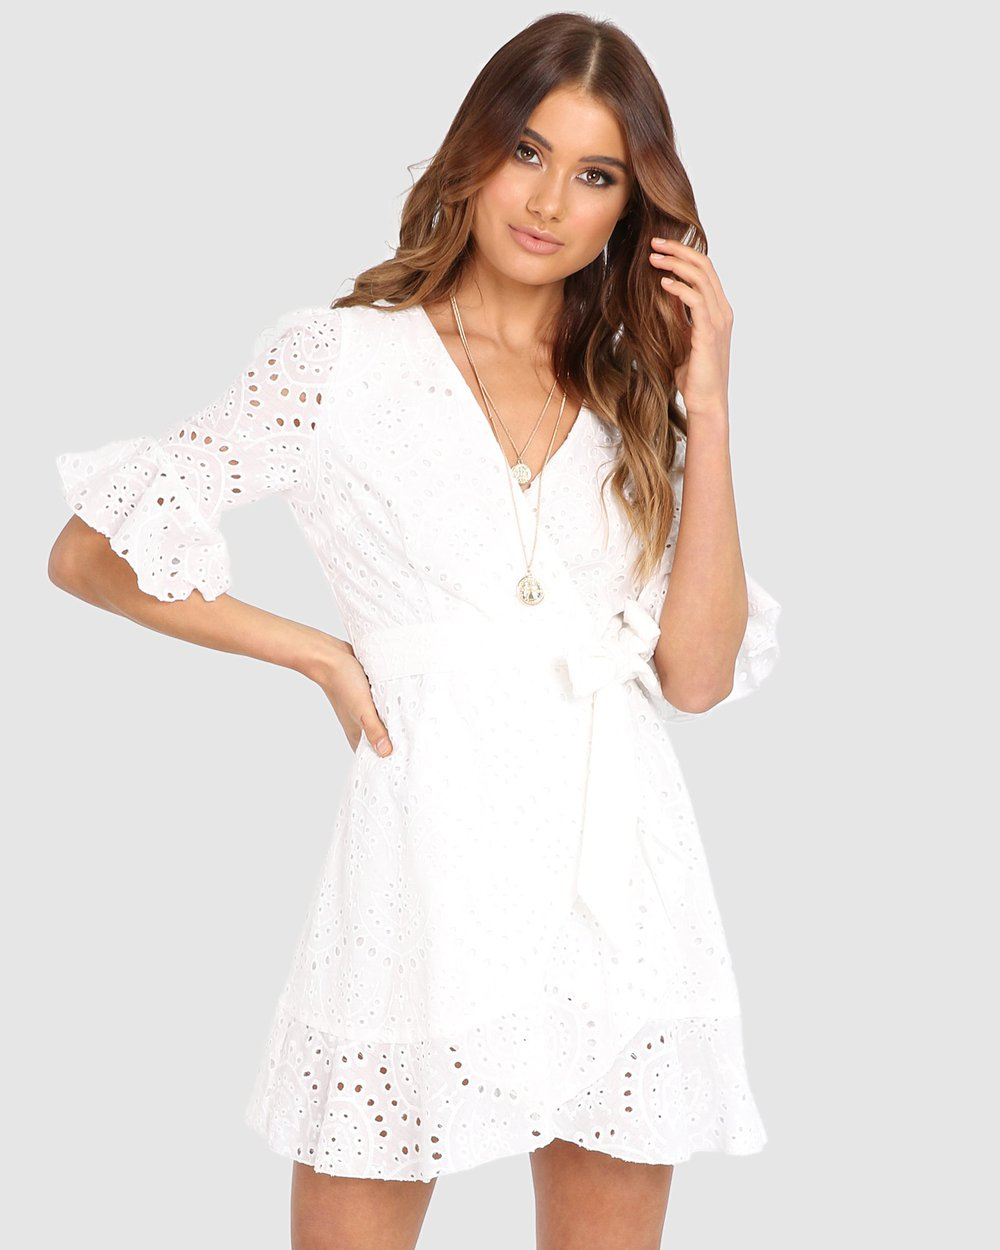 White Cotton Wrap Dress. Robe blanche par Lost in Lunar